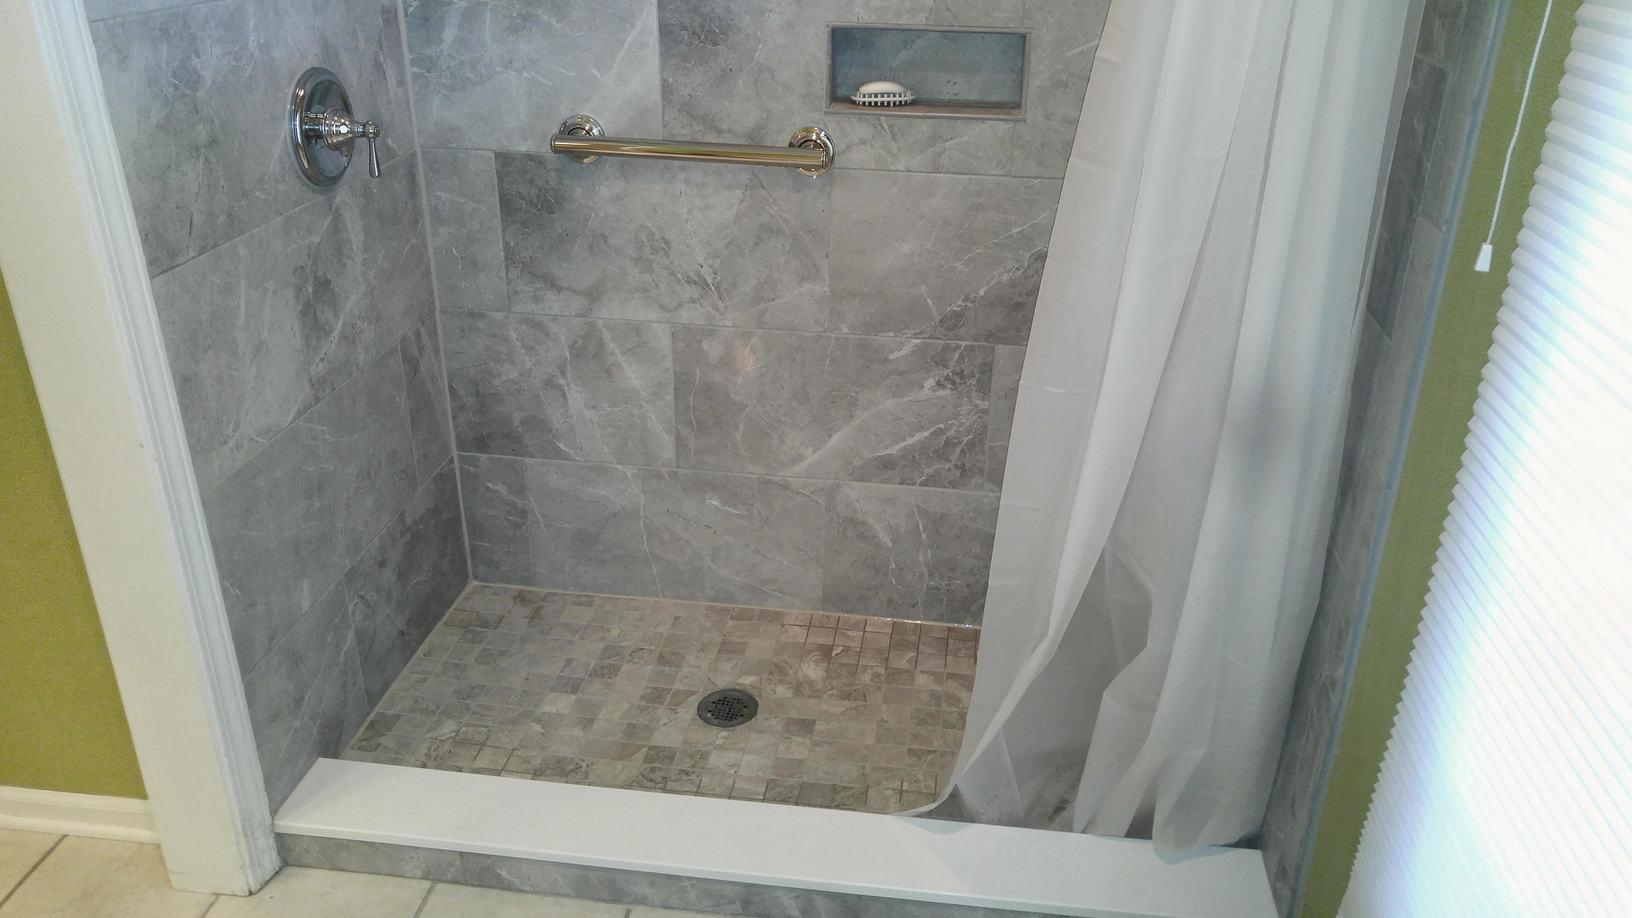 New tub to shower conversion in Maumee - After Photo